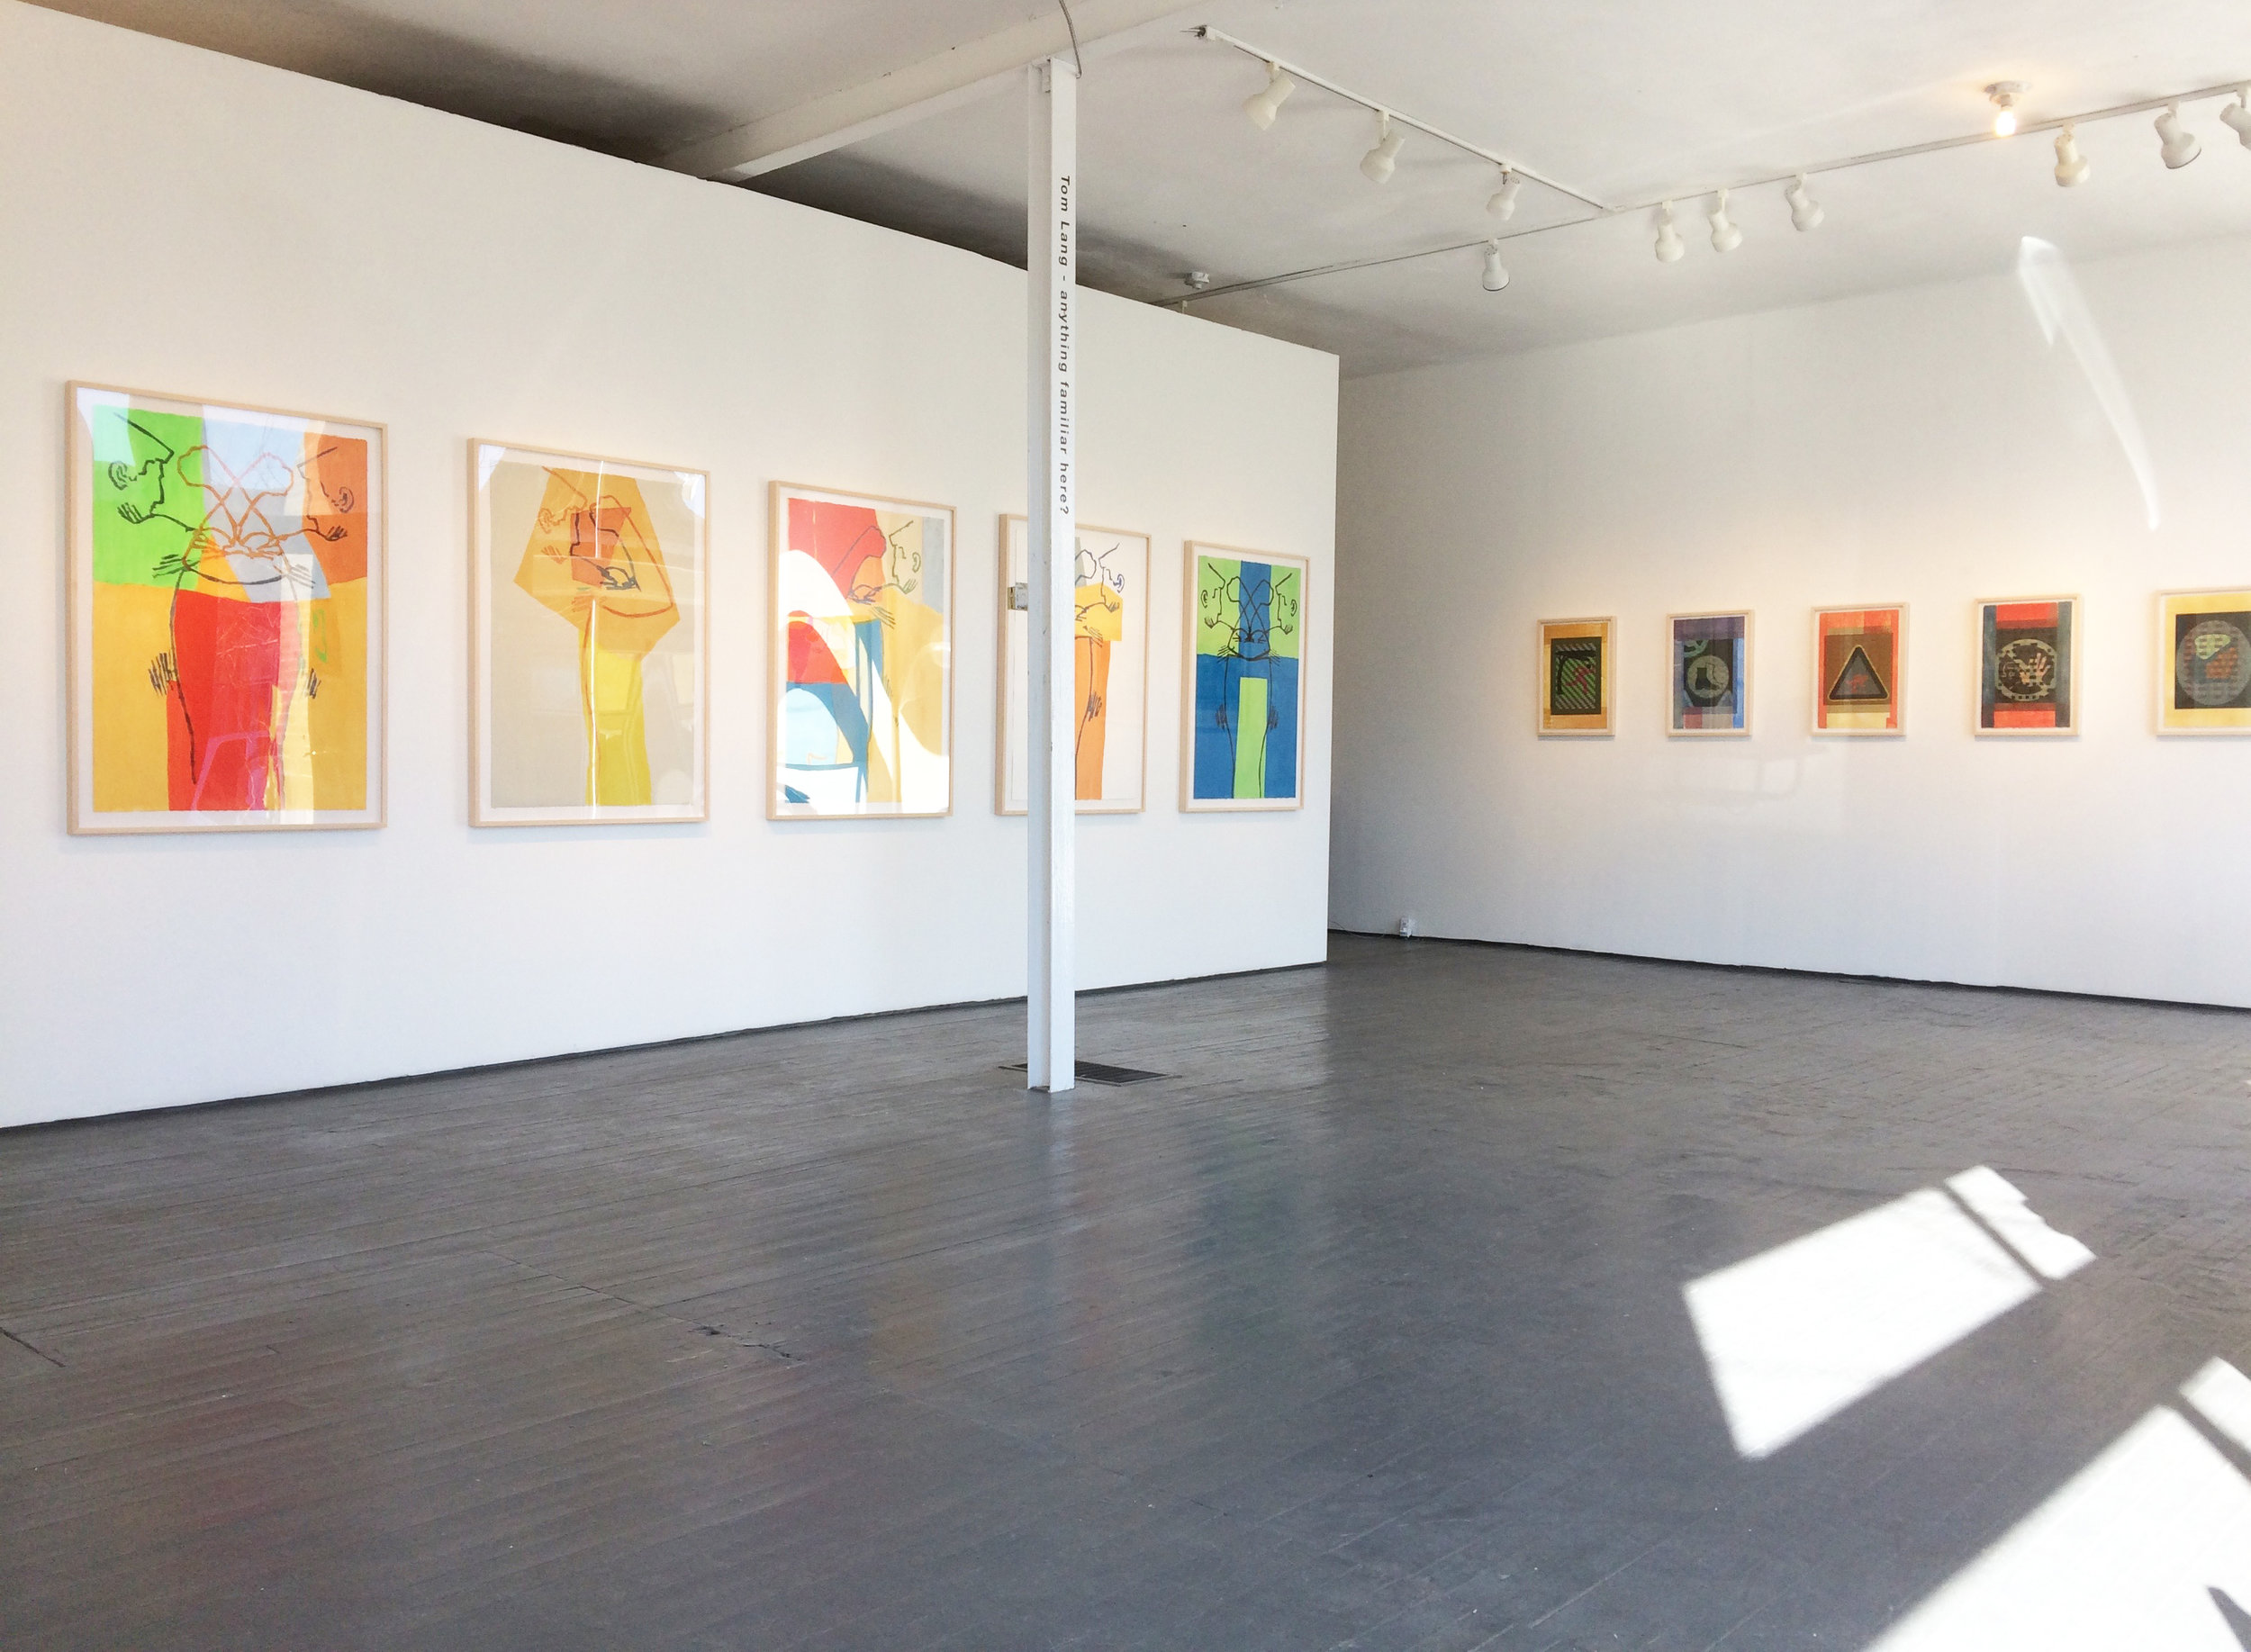 Anything Familiar Here?  Hoffman Lachance Contemporary  January 20 - February 4, 2017